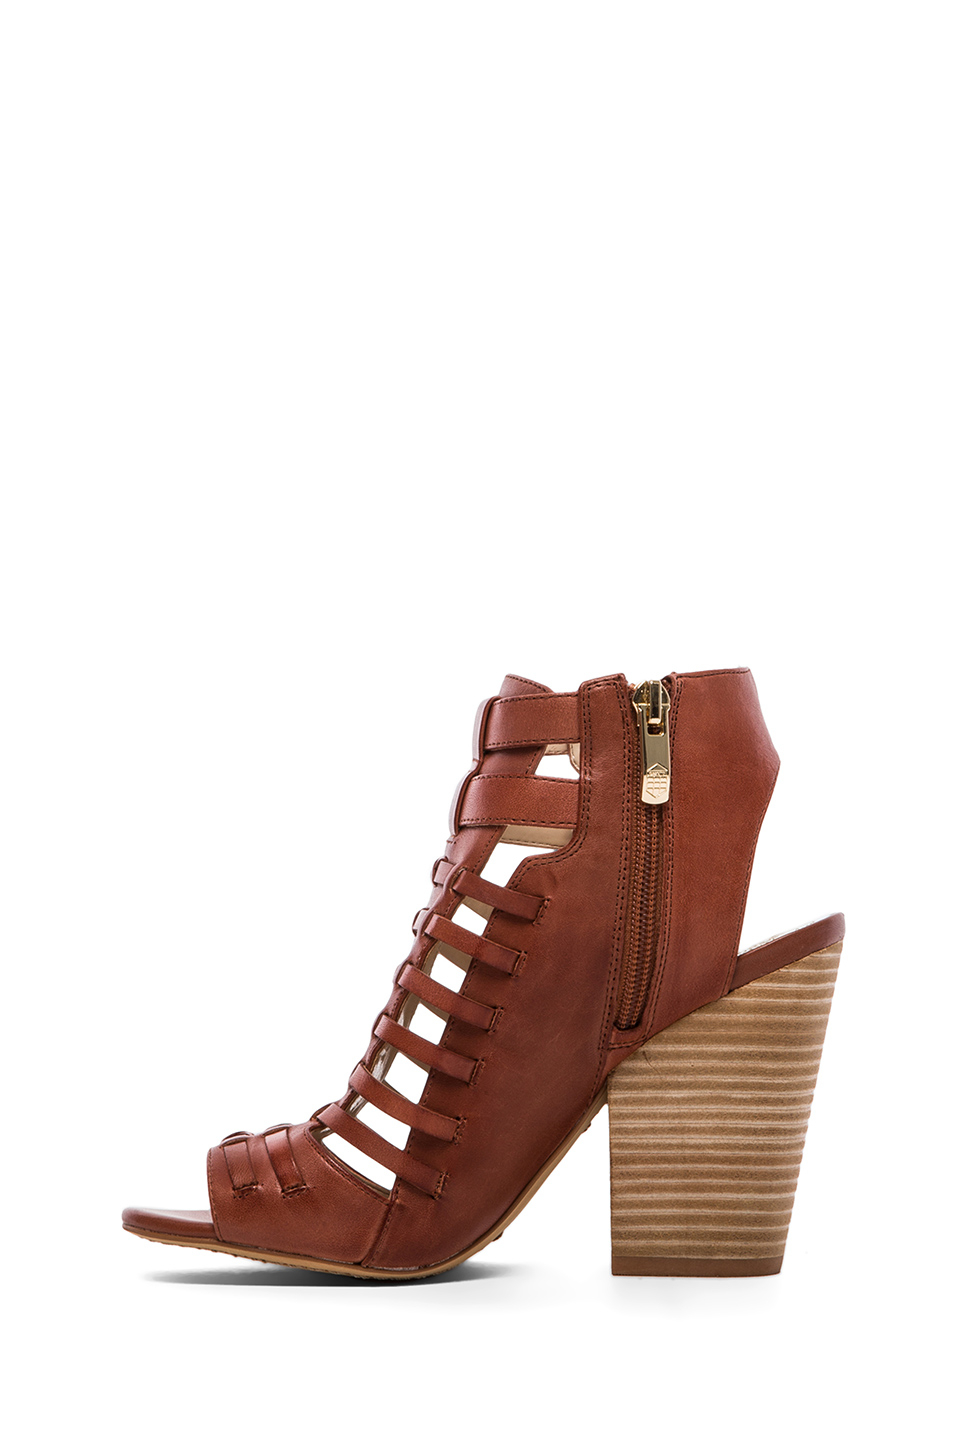 Vince Camuto Medow Sandal In Brick Red Lyst